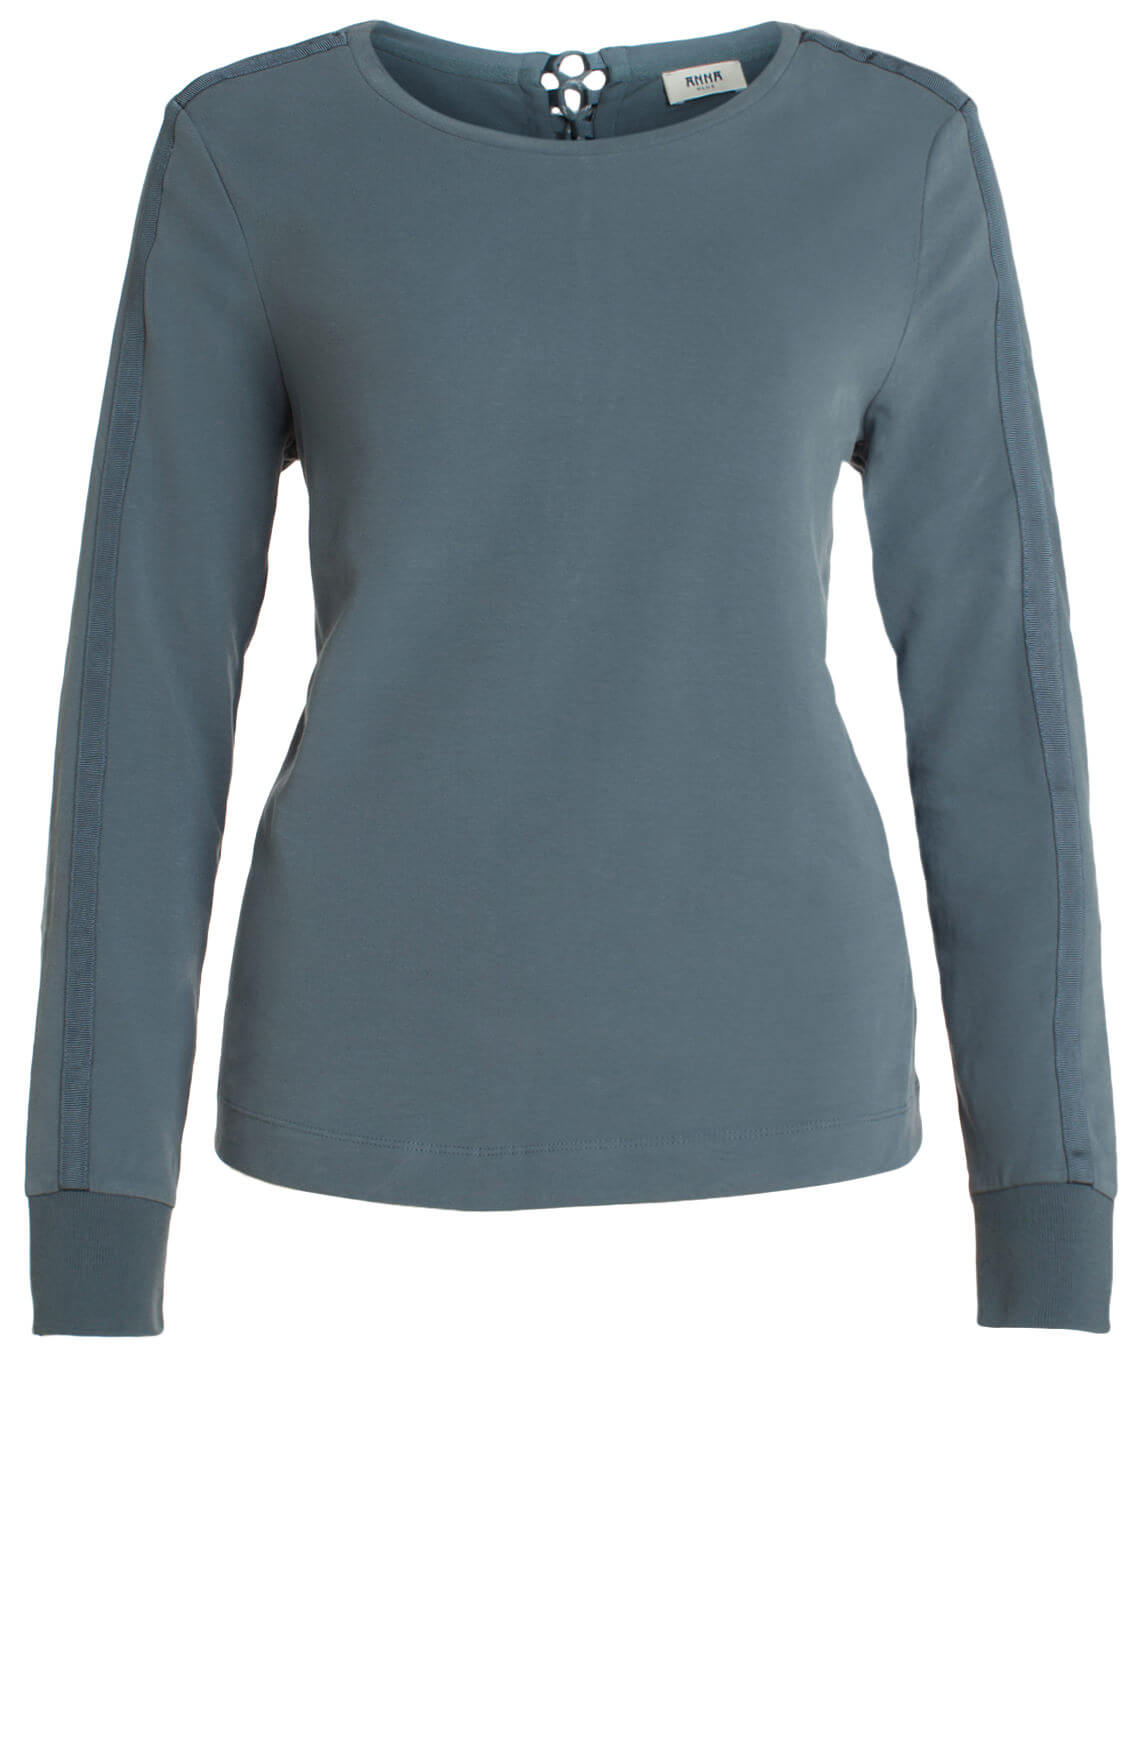 Anna Blue Dames Sweater met lace-up Grijs